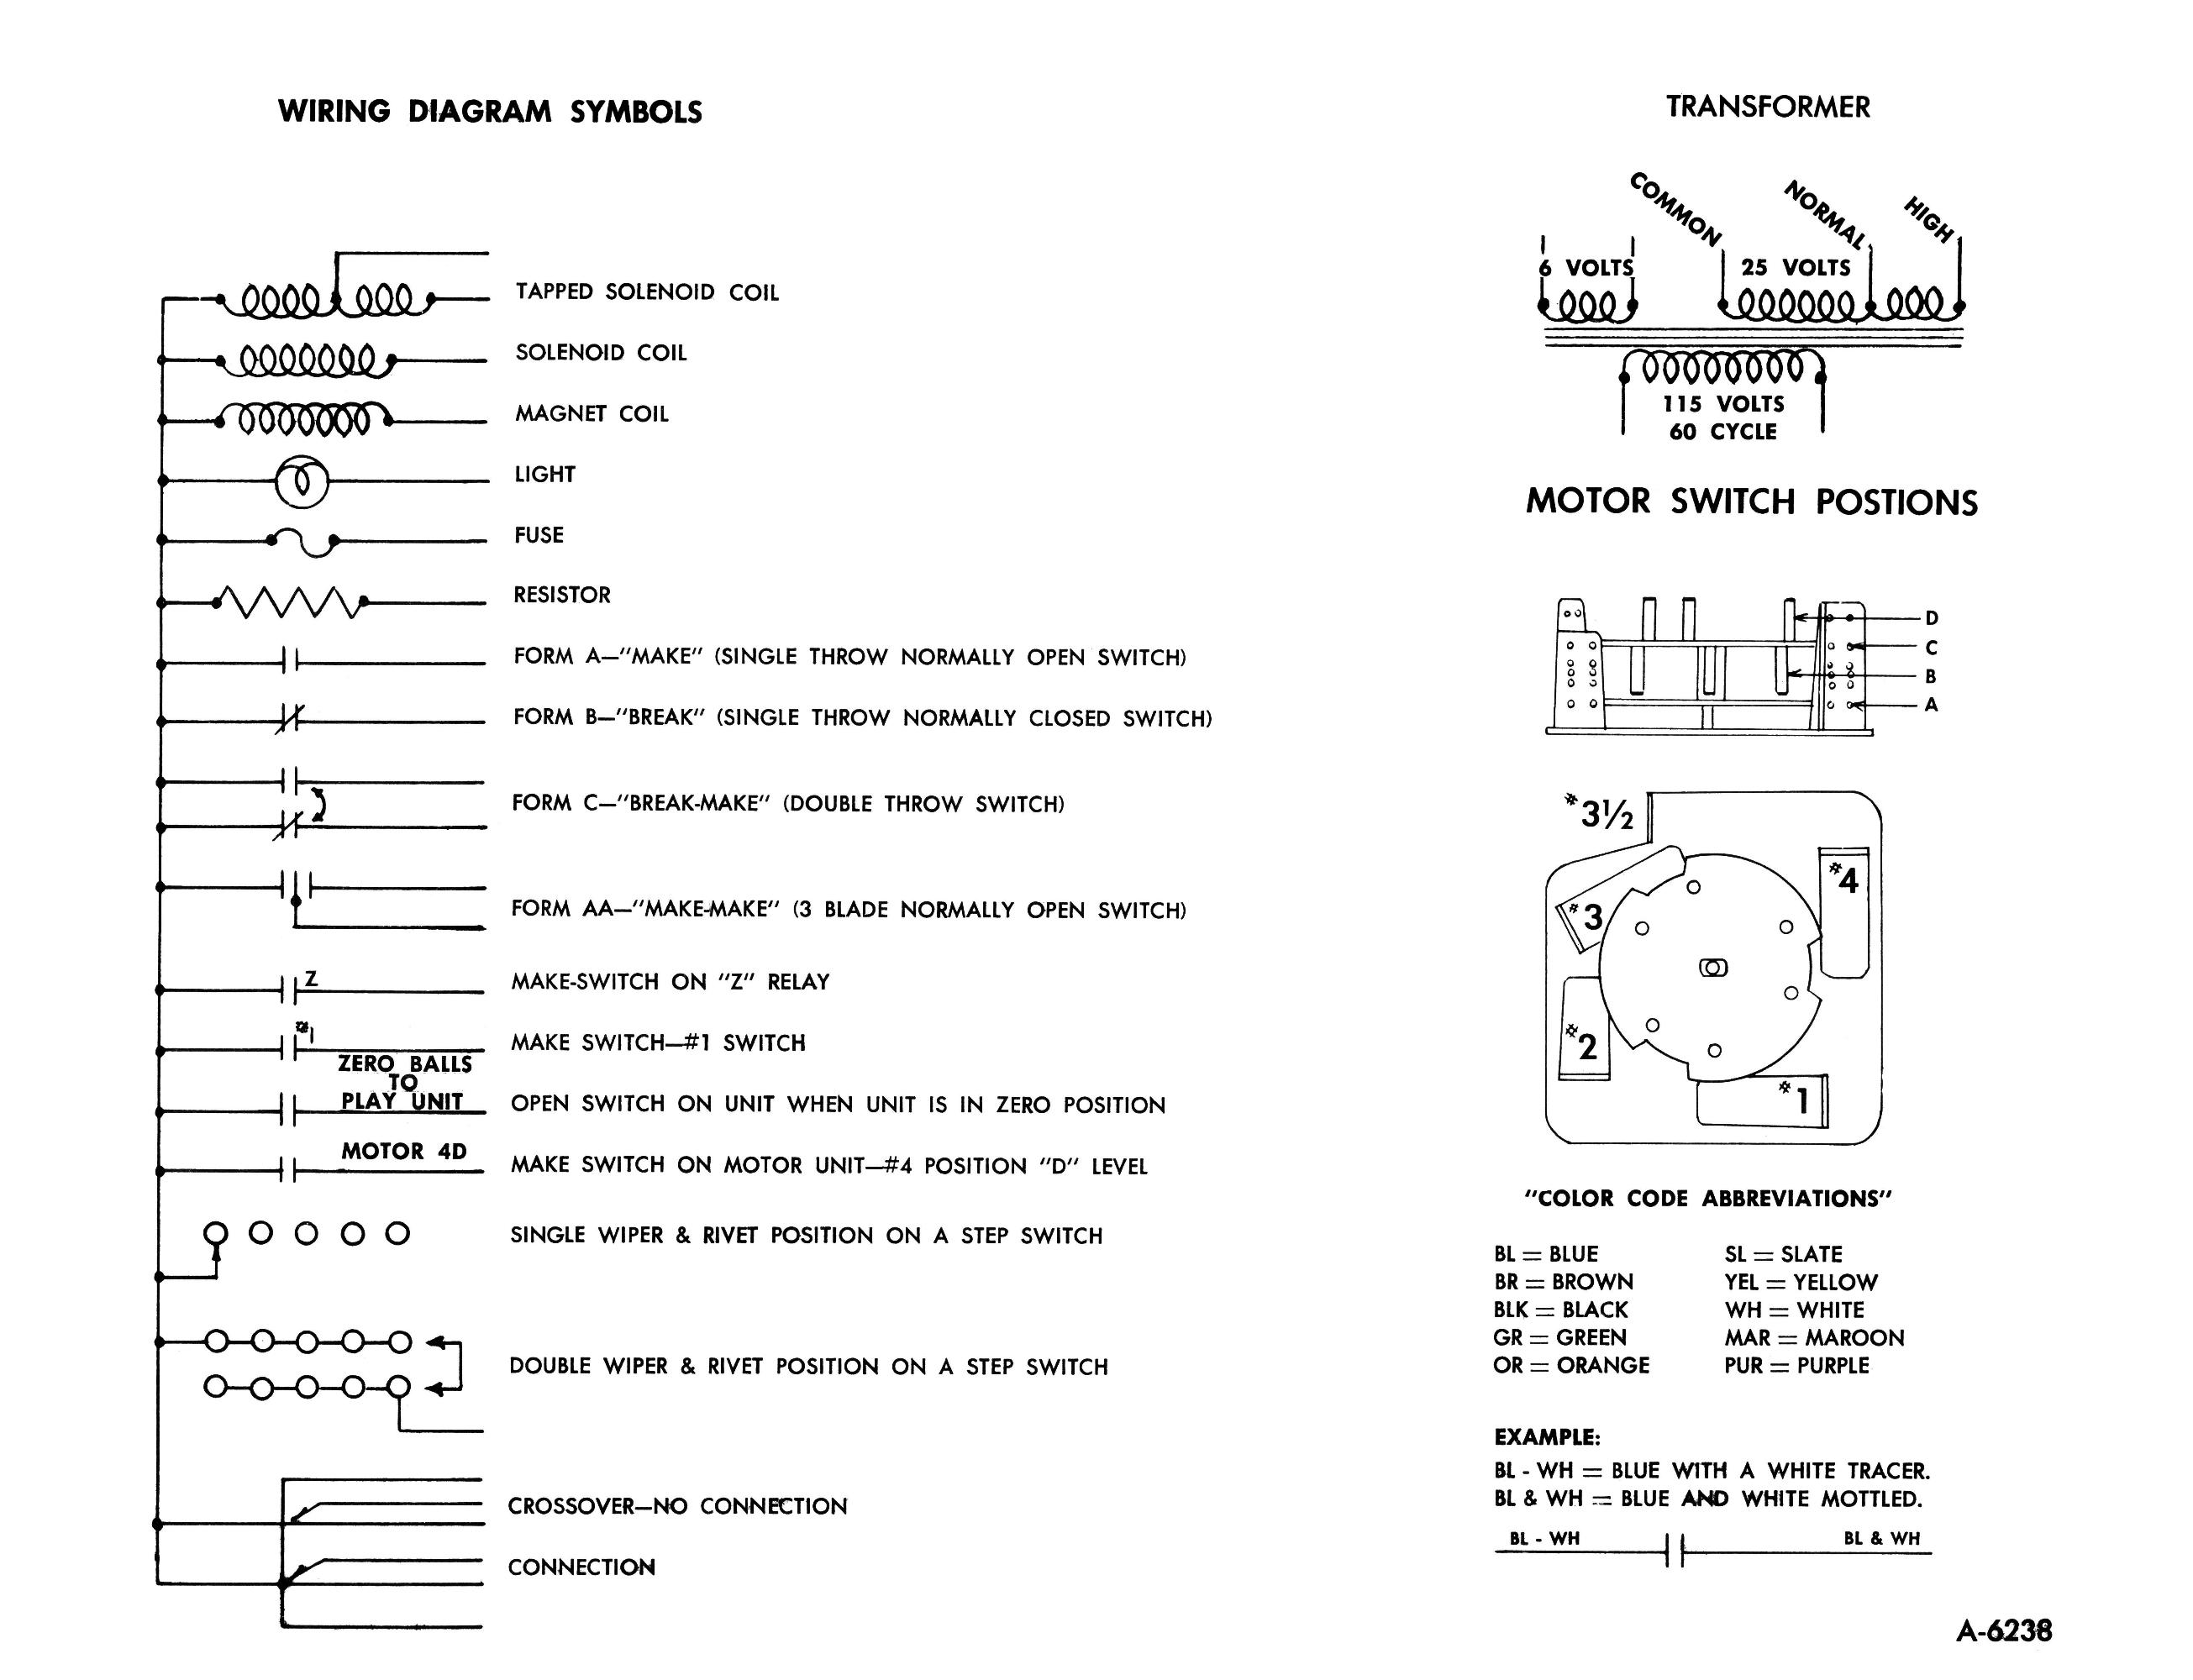 Gottlieb score and instruction reproduction cards wiring diagram symbols a 6238 swarovskicordoba Images